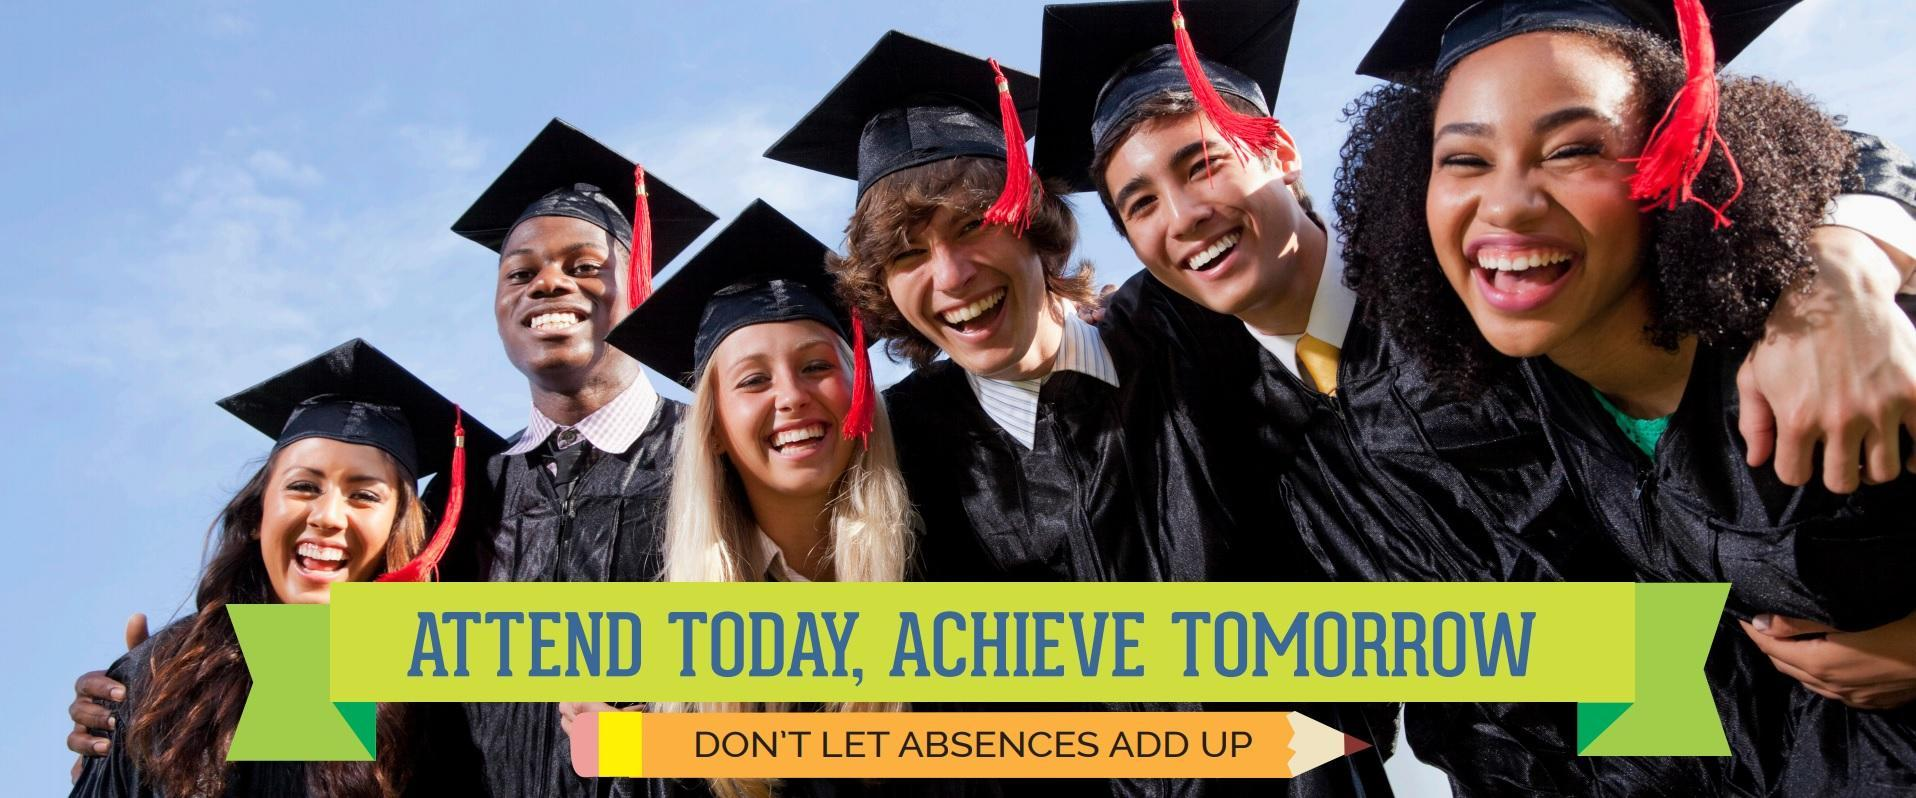 Attend today. Achieve tomorrow. Don't let absences add up.